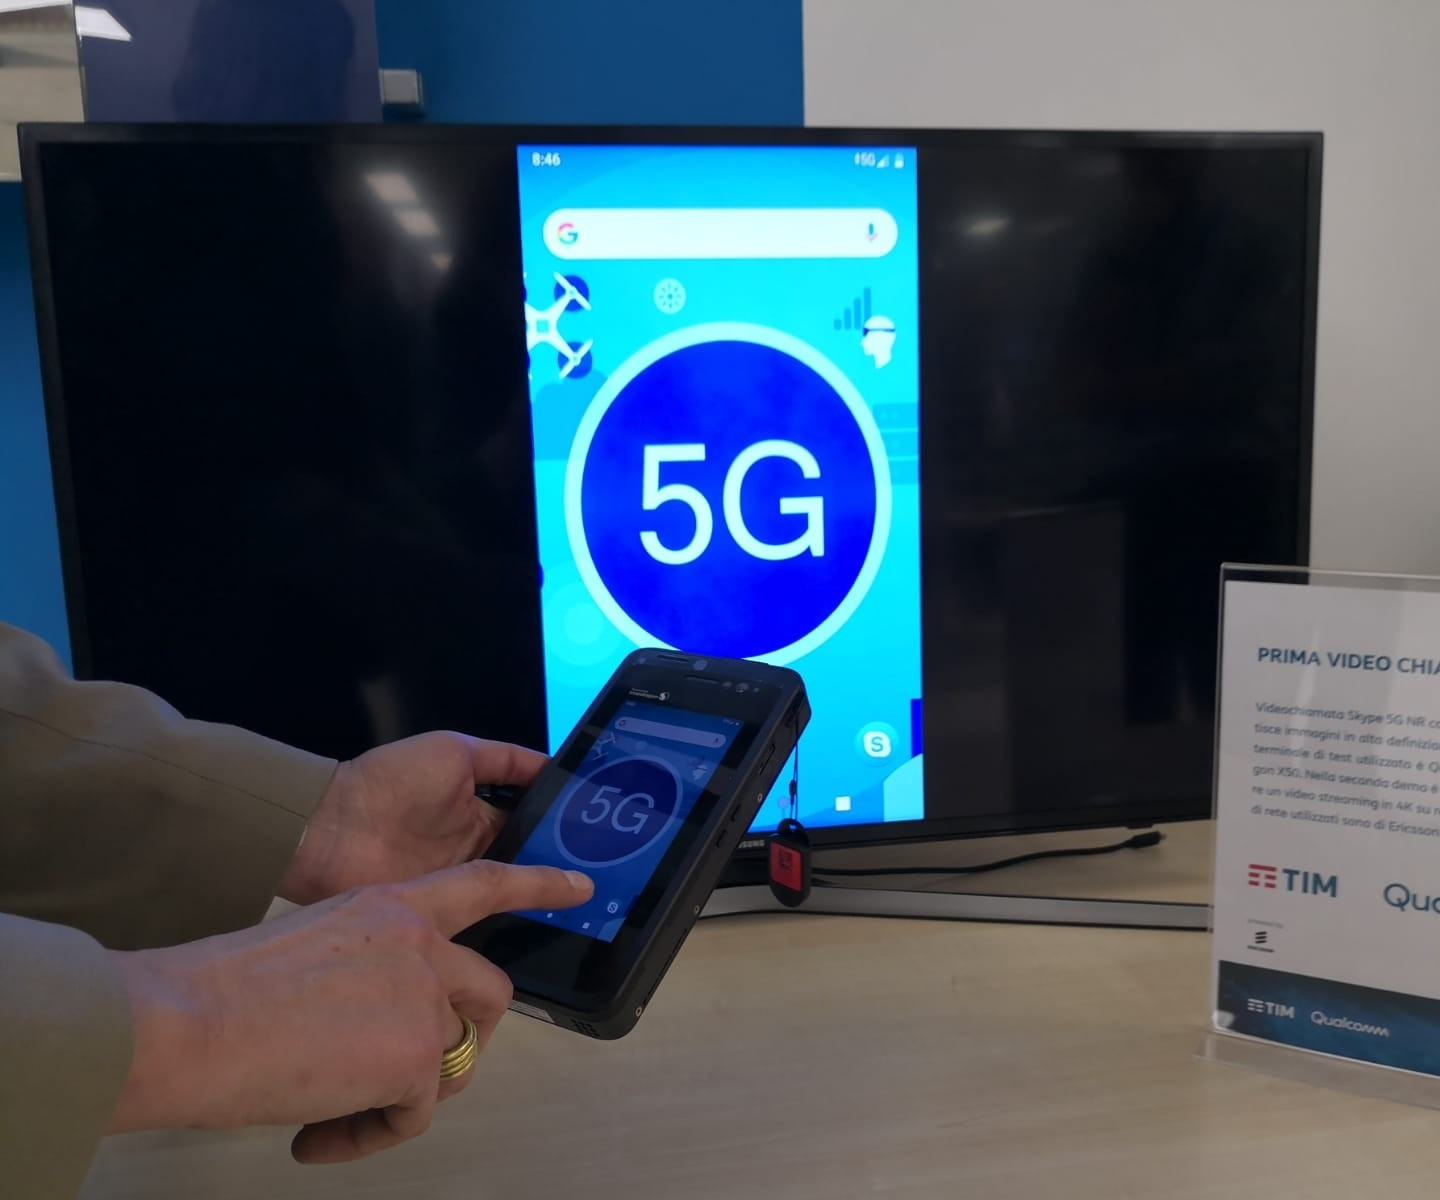 <strong>TIM Innovation Hub: il 5G toccato con mano</strong>